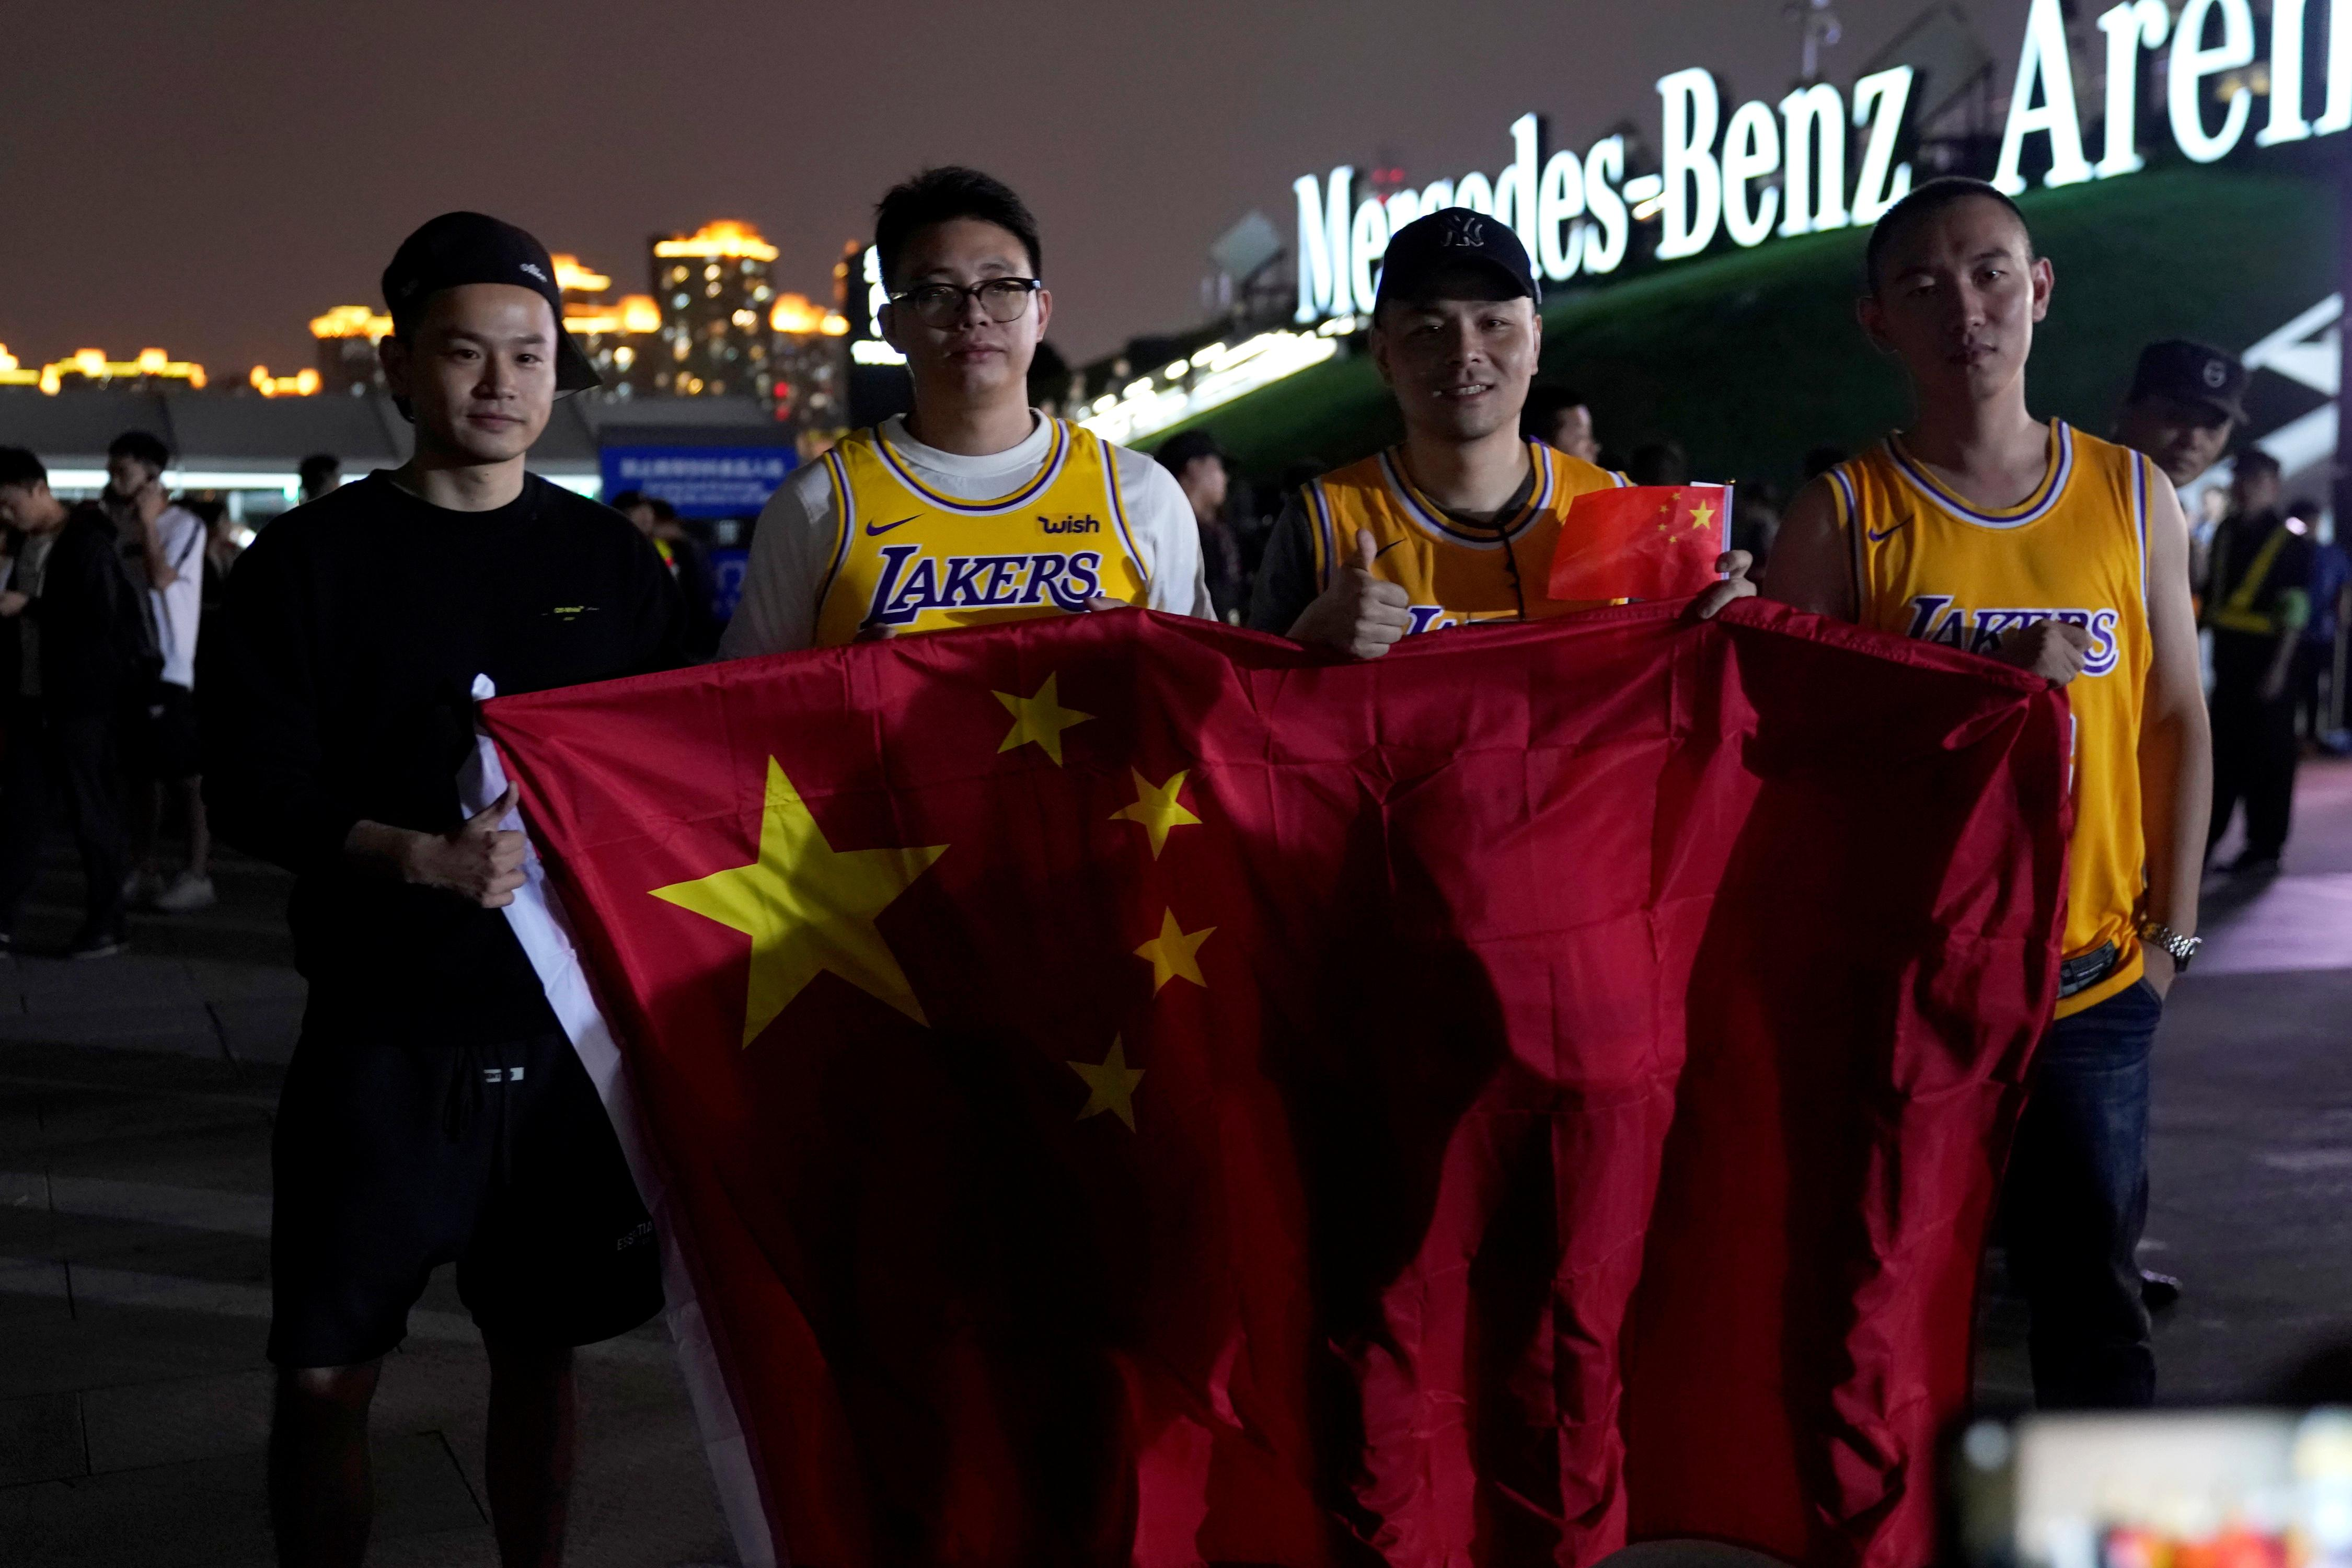 UPDATE 4-NBA scraps media access to teams in China amid HK tweet backlash